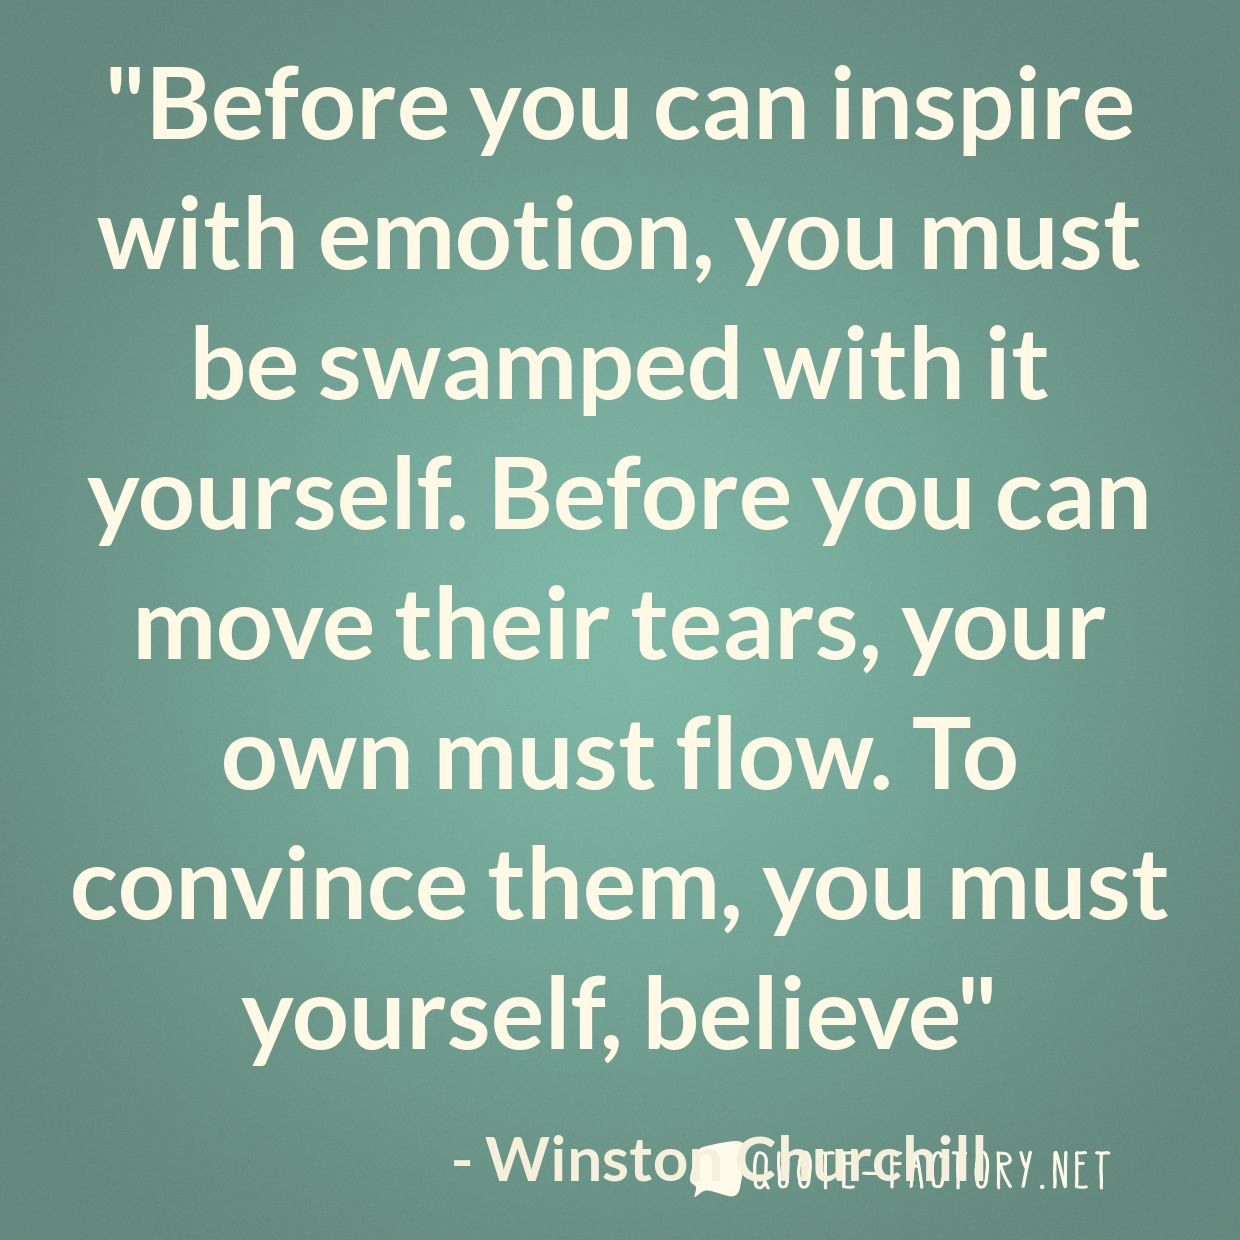 Before you can inspire with emotion, you must be swamped with it yourself. Before you can move their tears, your own must flow. To convince them, you must yourself, believe